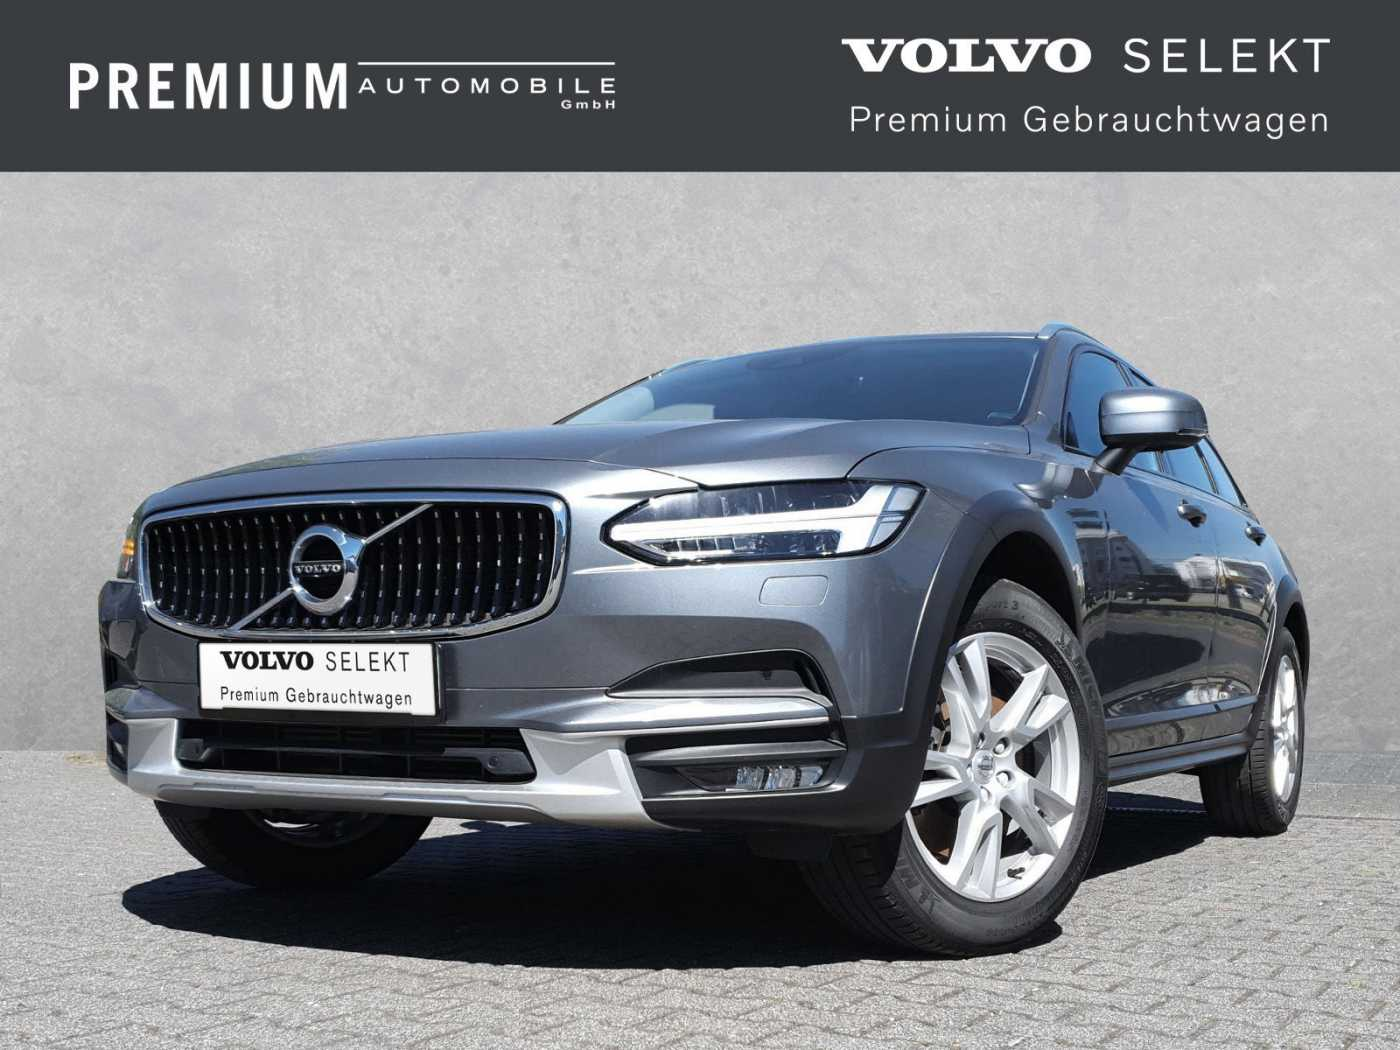 Volvo V90 Cross Country D5 AWD Geartronic ACC/Voll-LED/18'', Jahr 2018, Diesel